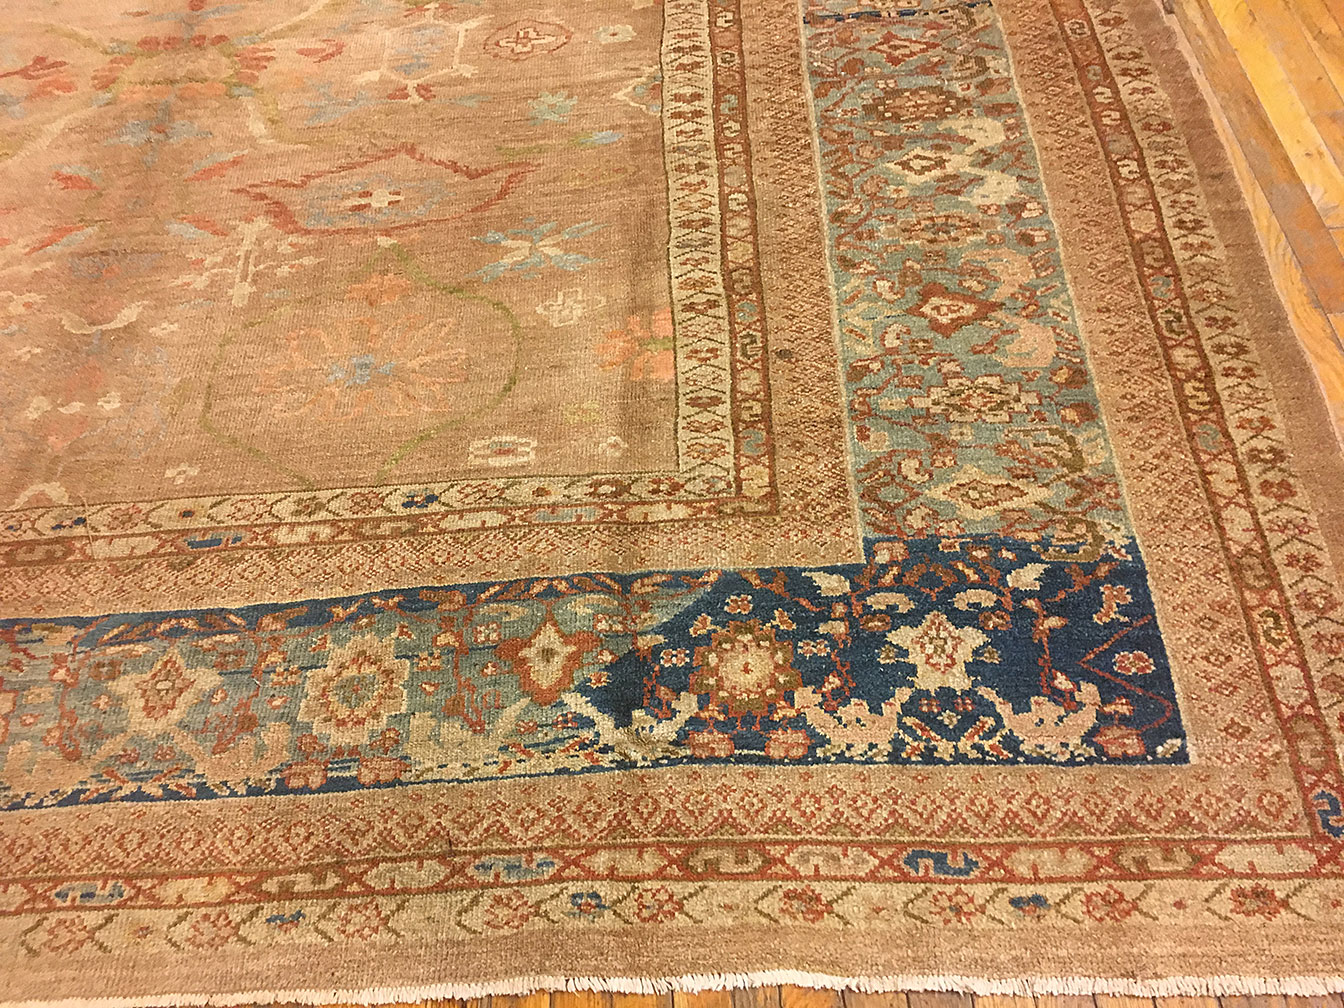 Antique sultan abad Carpet - # 52117